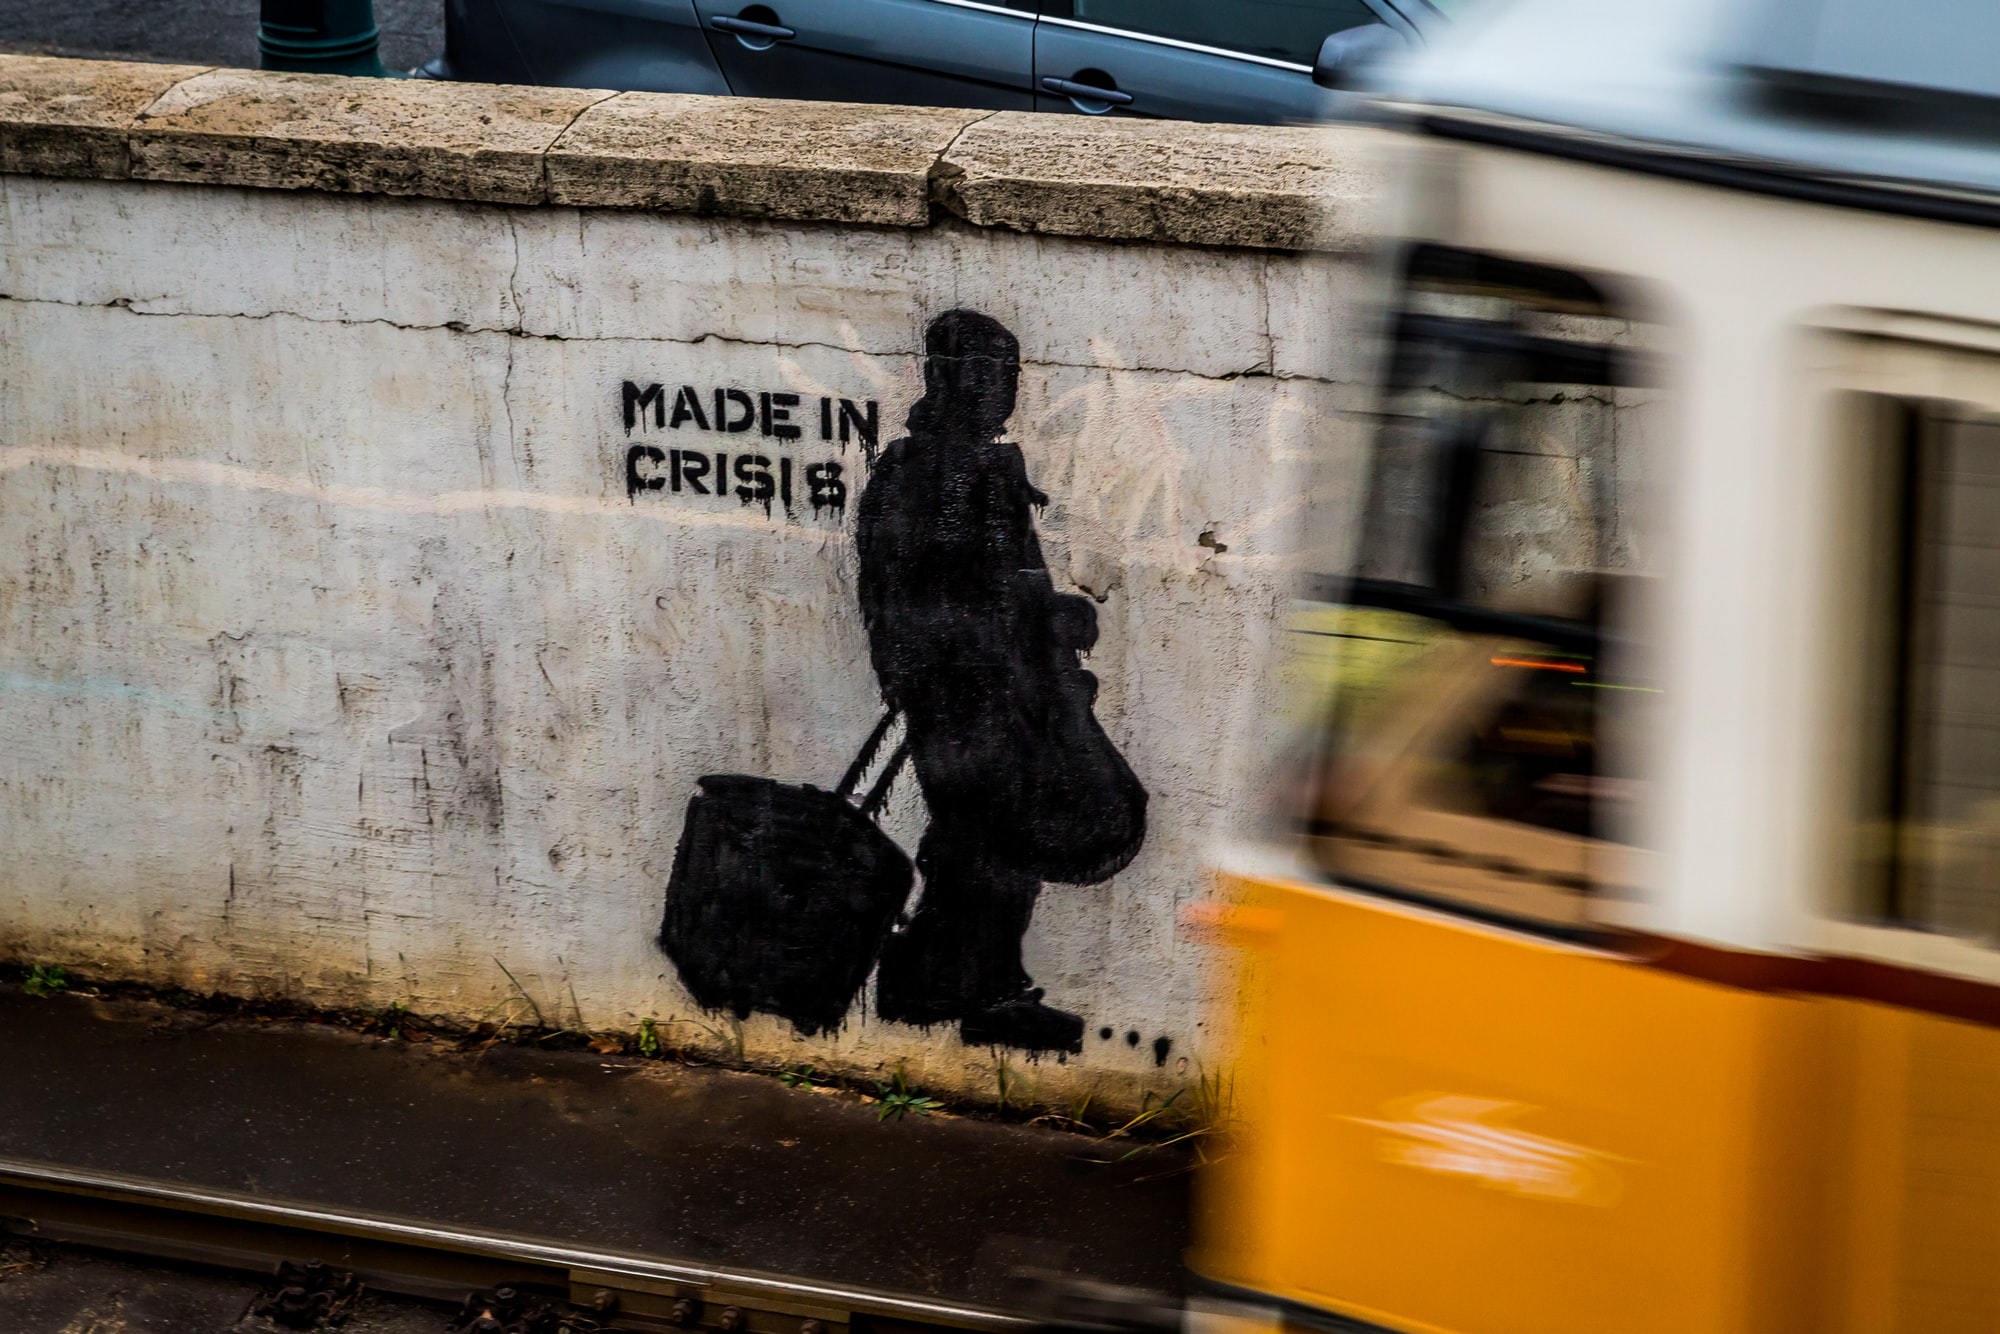 During a city trip to Budapest, Hungary, I saw this stencil street art on a wall at a metro line. For the photo, I chose a shutter speed slower than the metro expected would be and waited some minutes until the metro came.